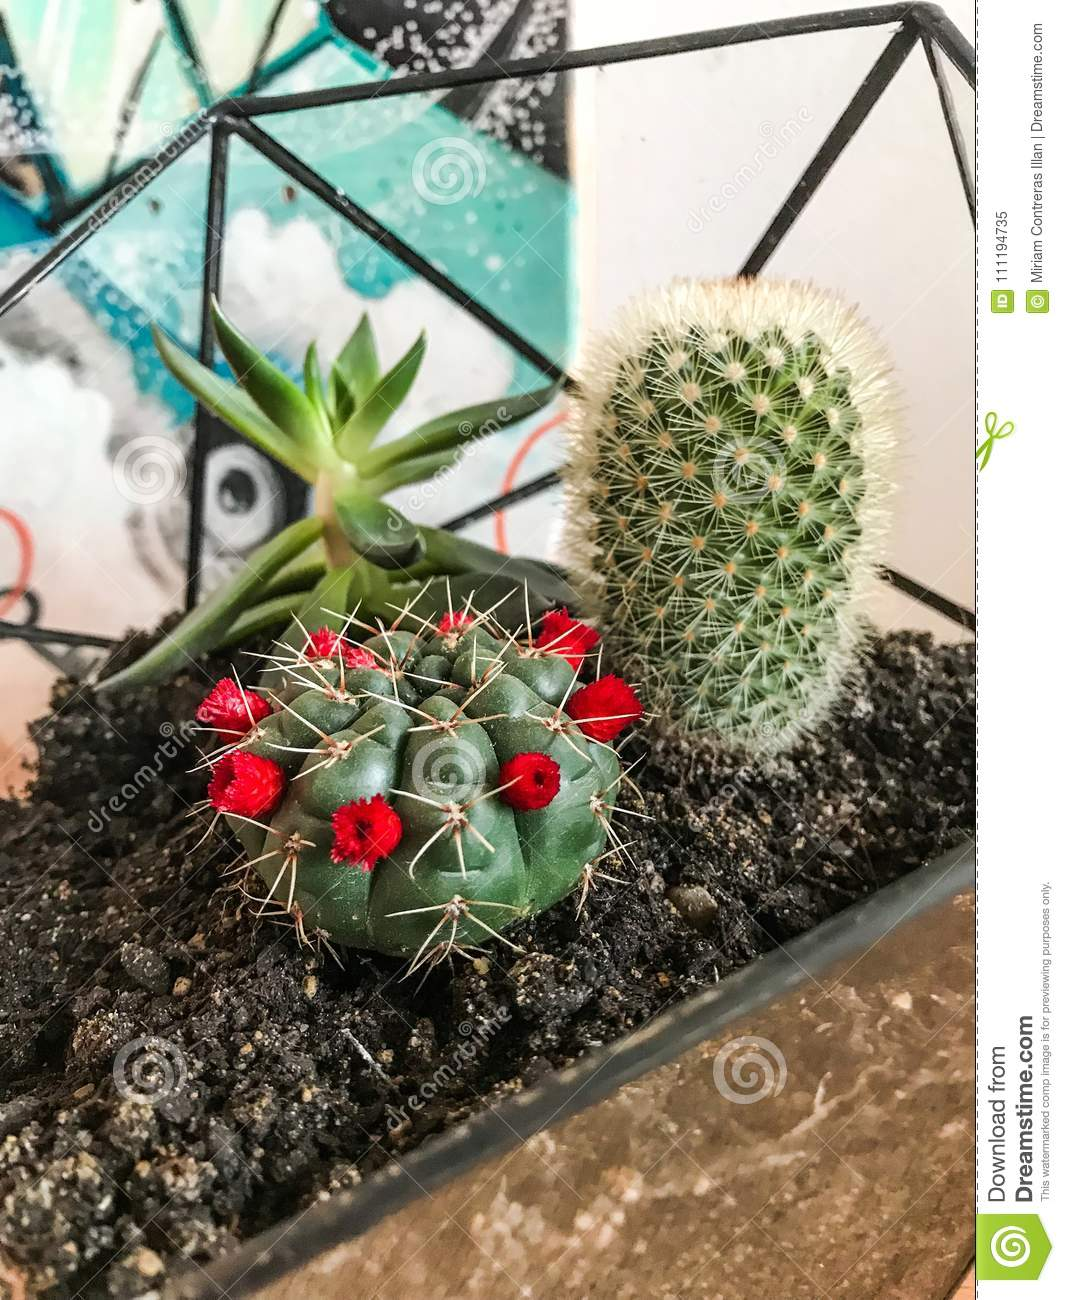 Photograph Of Terrarium With Cactus And Succulents Stock Image Image Of Cactus Glass 111194735